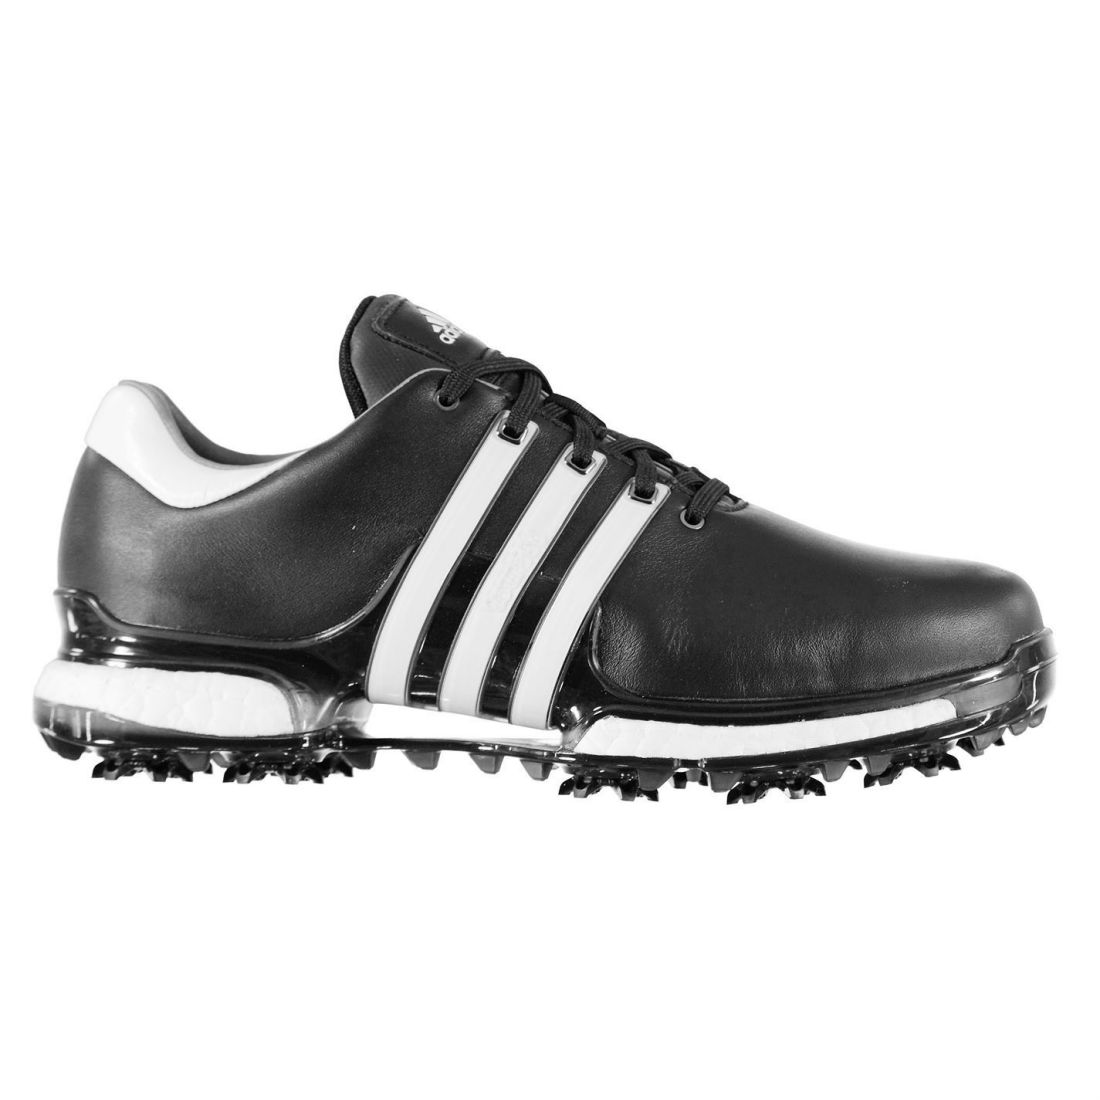 info for 7f7ab 8833d adidas Mens Tour 360 Boost Golf Shoes Spiked Lace Up Padded Ankle Collar  Studs